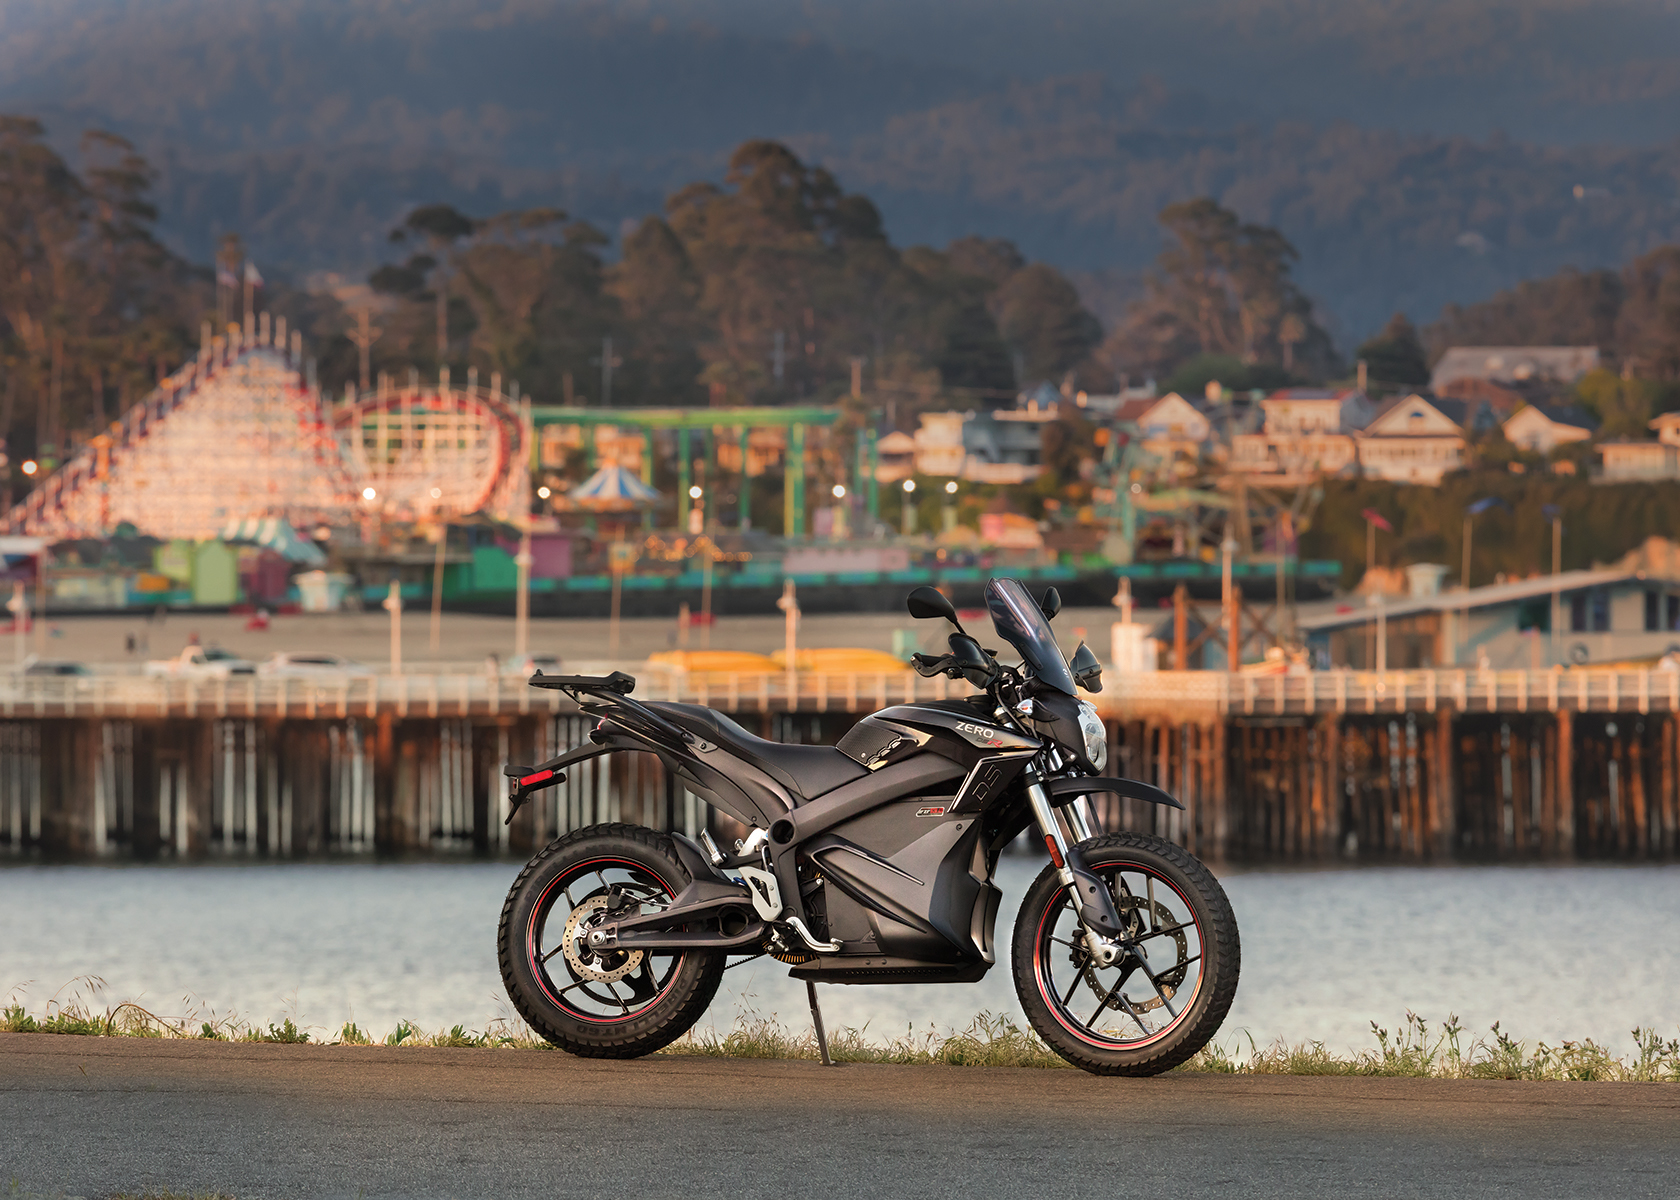 2016 10th Anniversary Zero DSR Electric Motorcycle